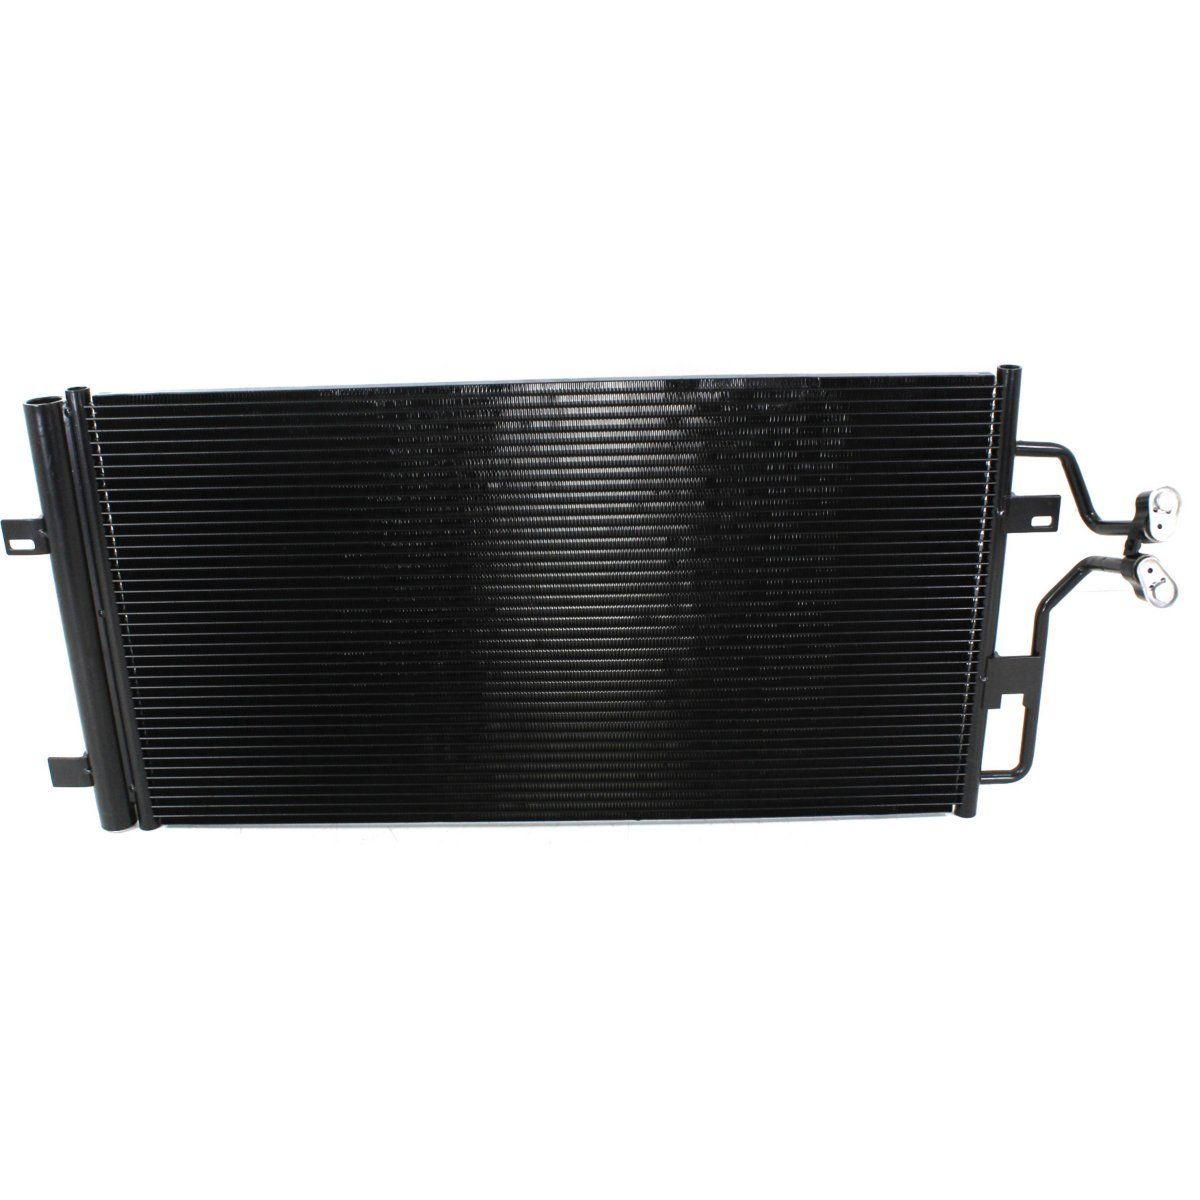 Kool Vue AC Condenser For 2006-2011 Cadillac DTS Buick